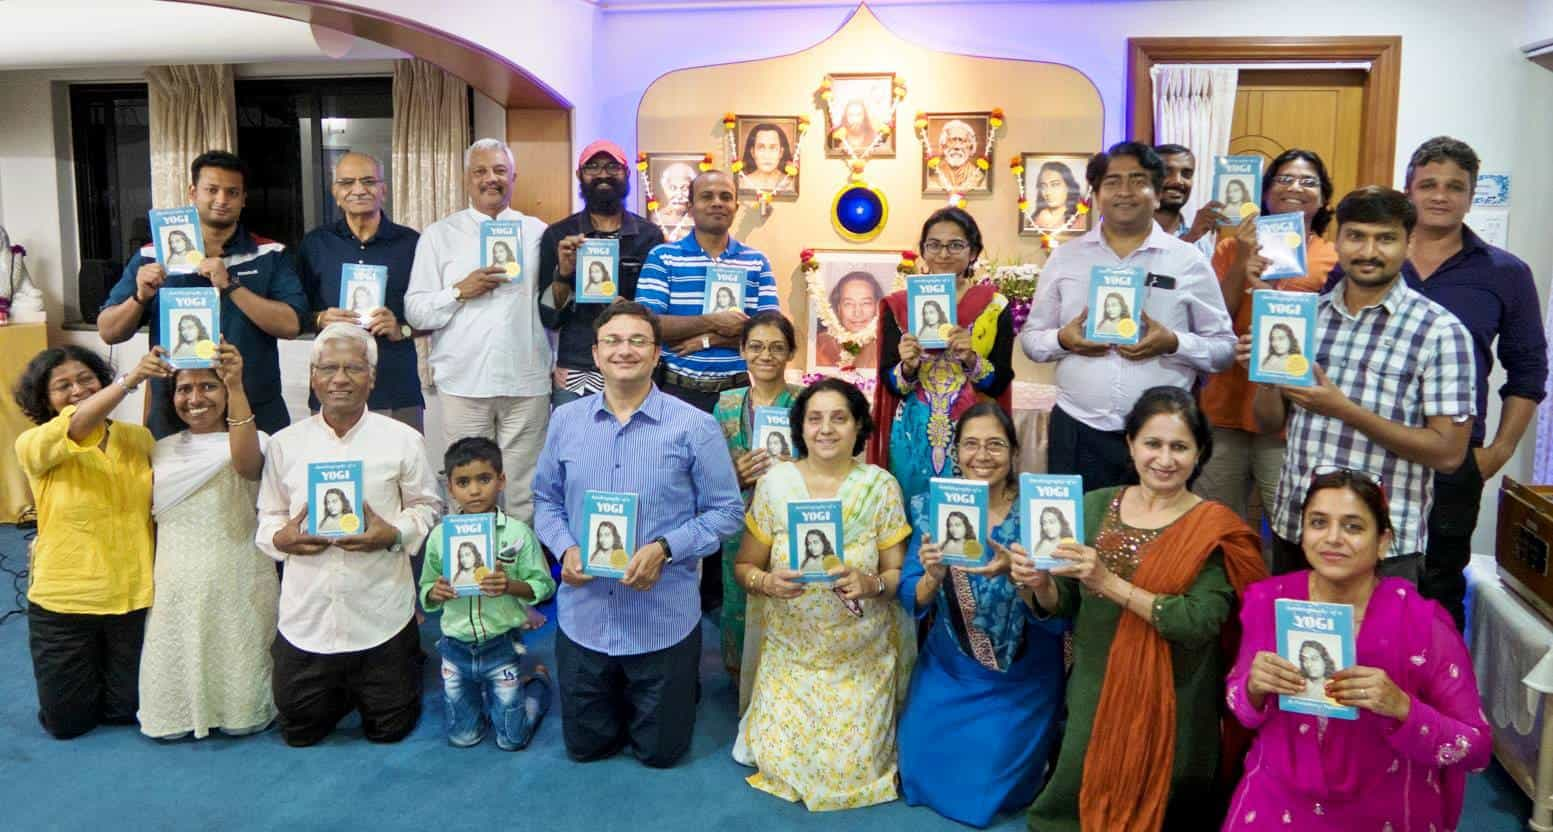 Group Photo with Autobiography of a Yogi